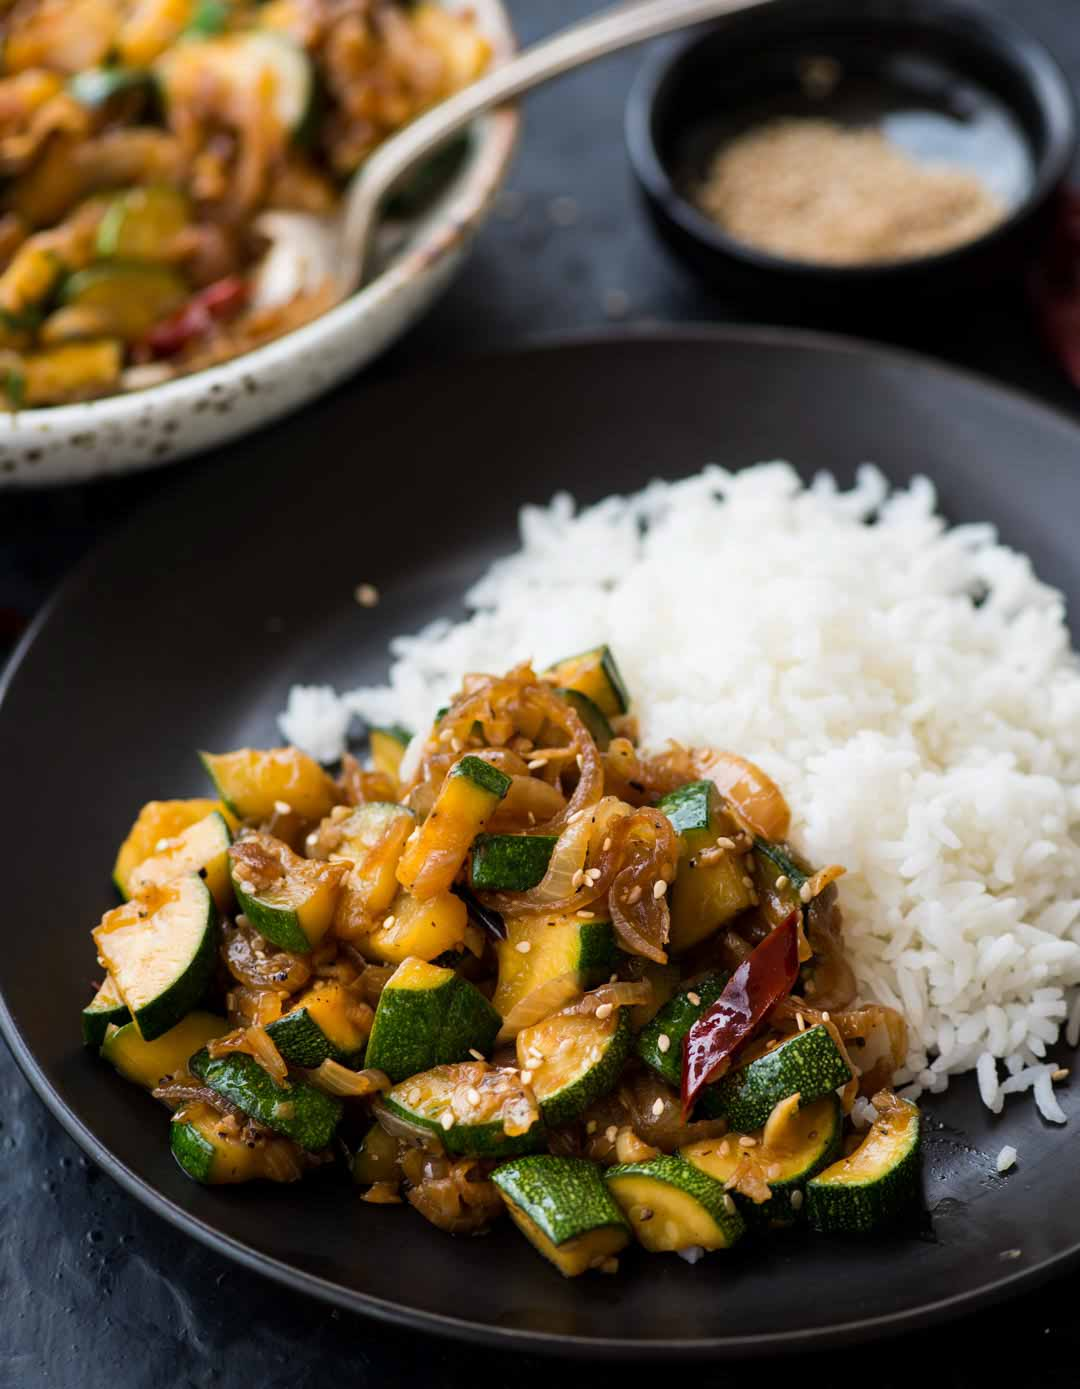 Zucchini Stir Fry from The Flavours of Kitchen